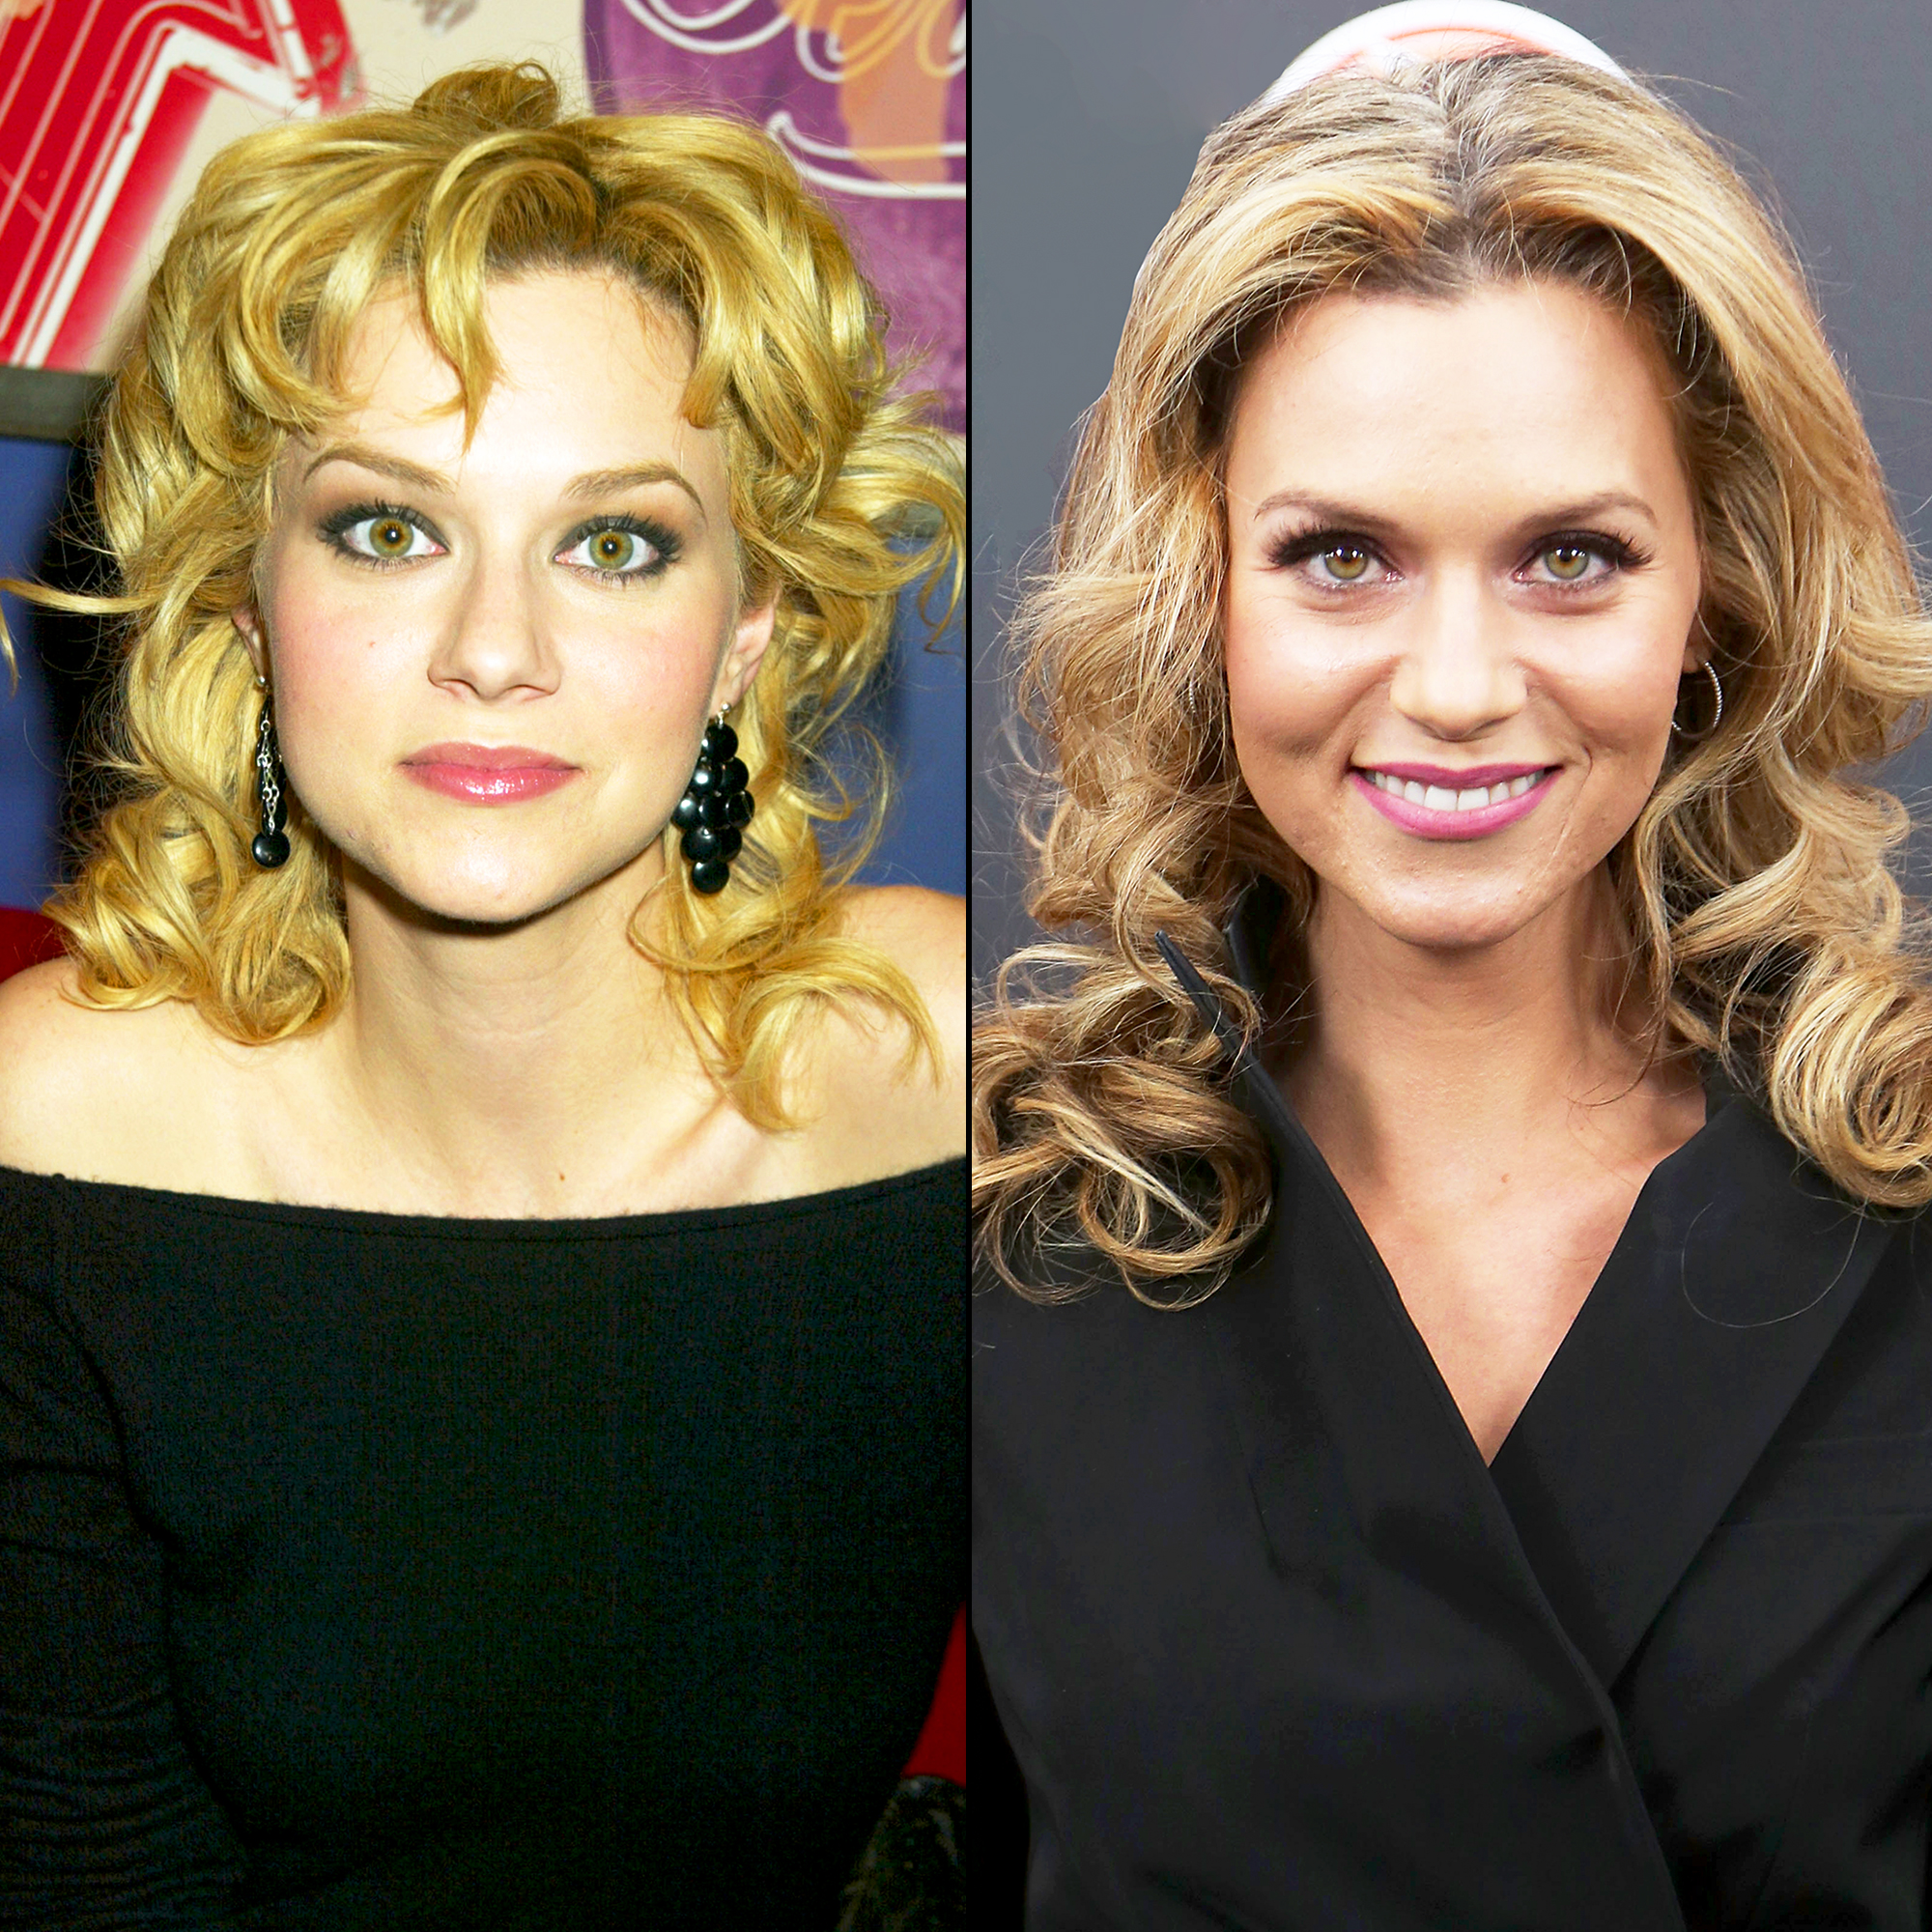 Hilarie Burton One Tree Hill Cast Then and Now Gallery - After starting her career as VJ on MTV's TRL , Burton landed her first TV role on Dawson's Creek , leading to her starring role in One Tree Hill as artsy, angsty cheerleader Peyton Sawyer. After leaving the show with Murray following season 6, she went on to appear on White Collar , Grey's Anatomy and Lethal Weapon .